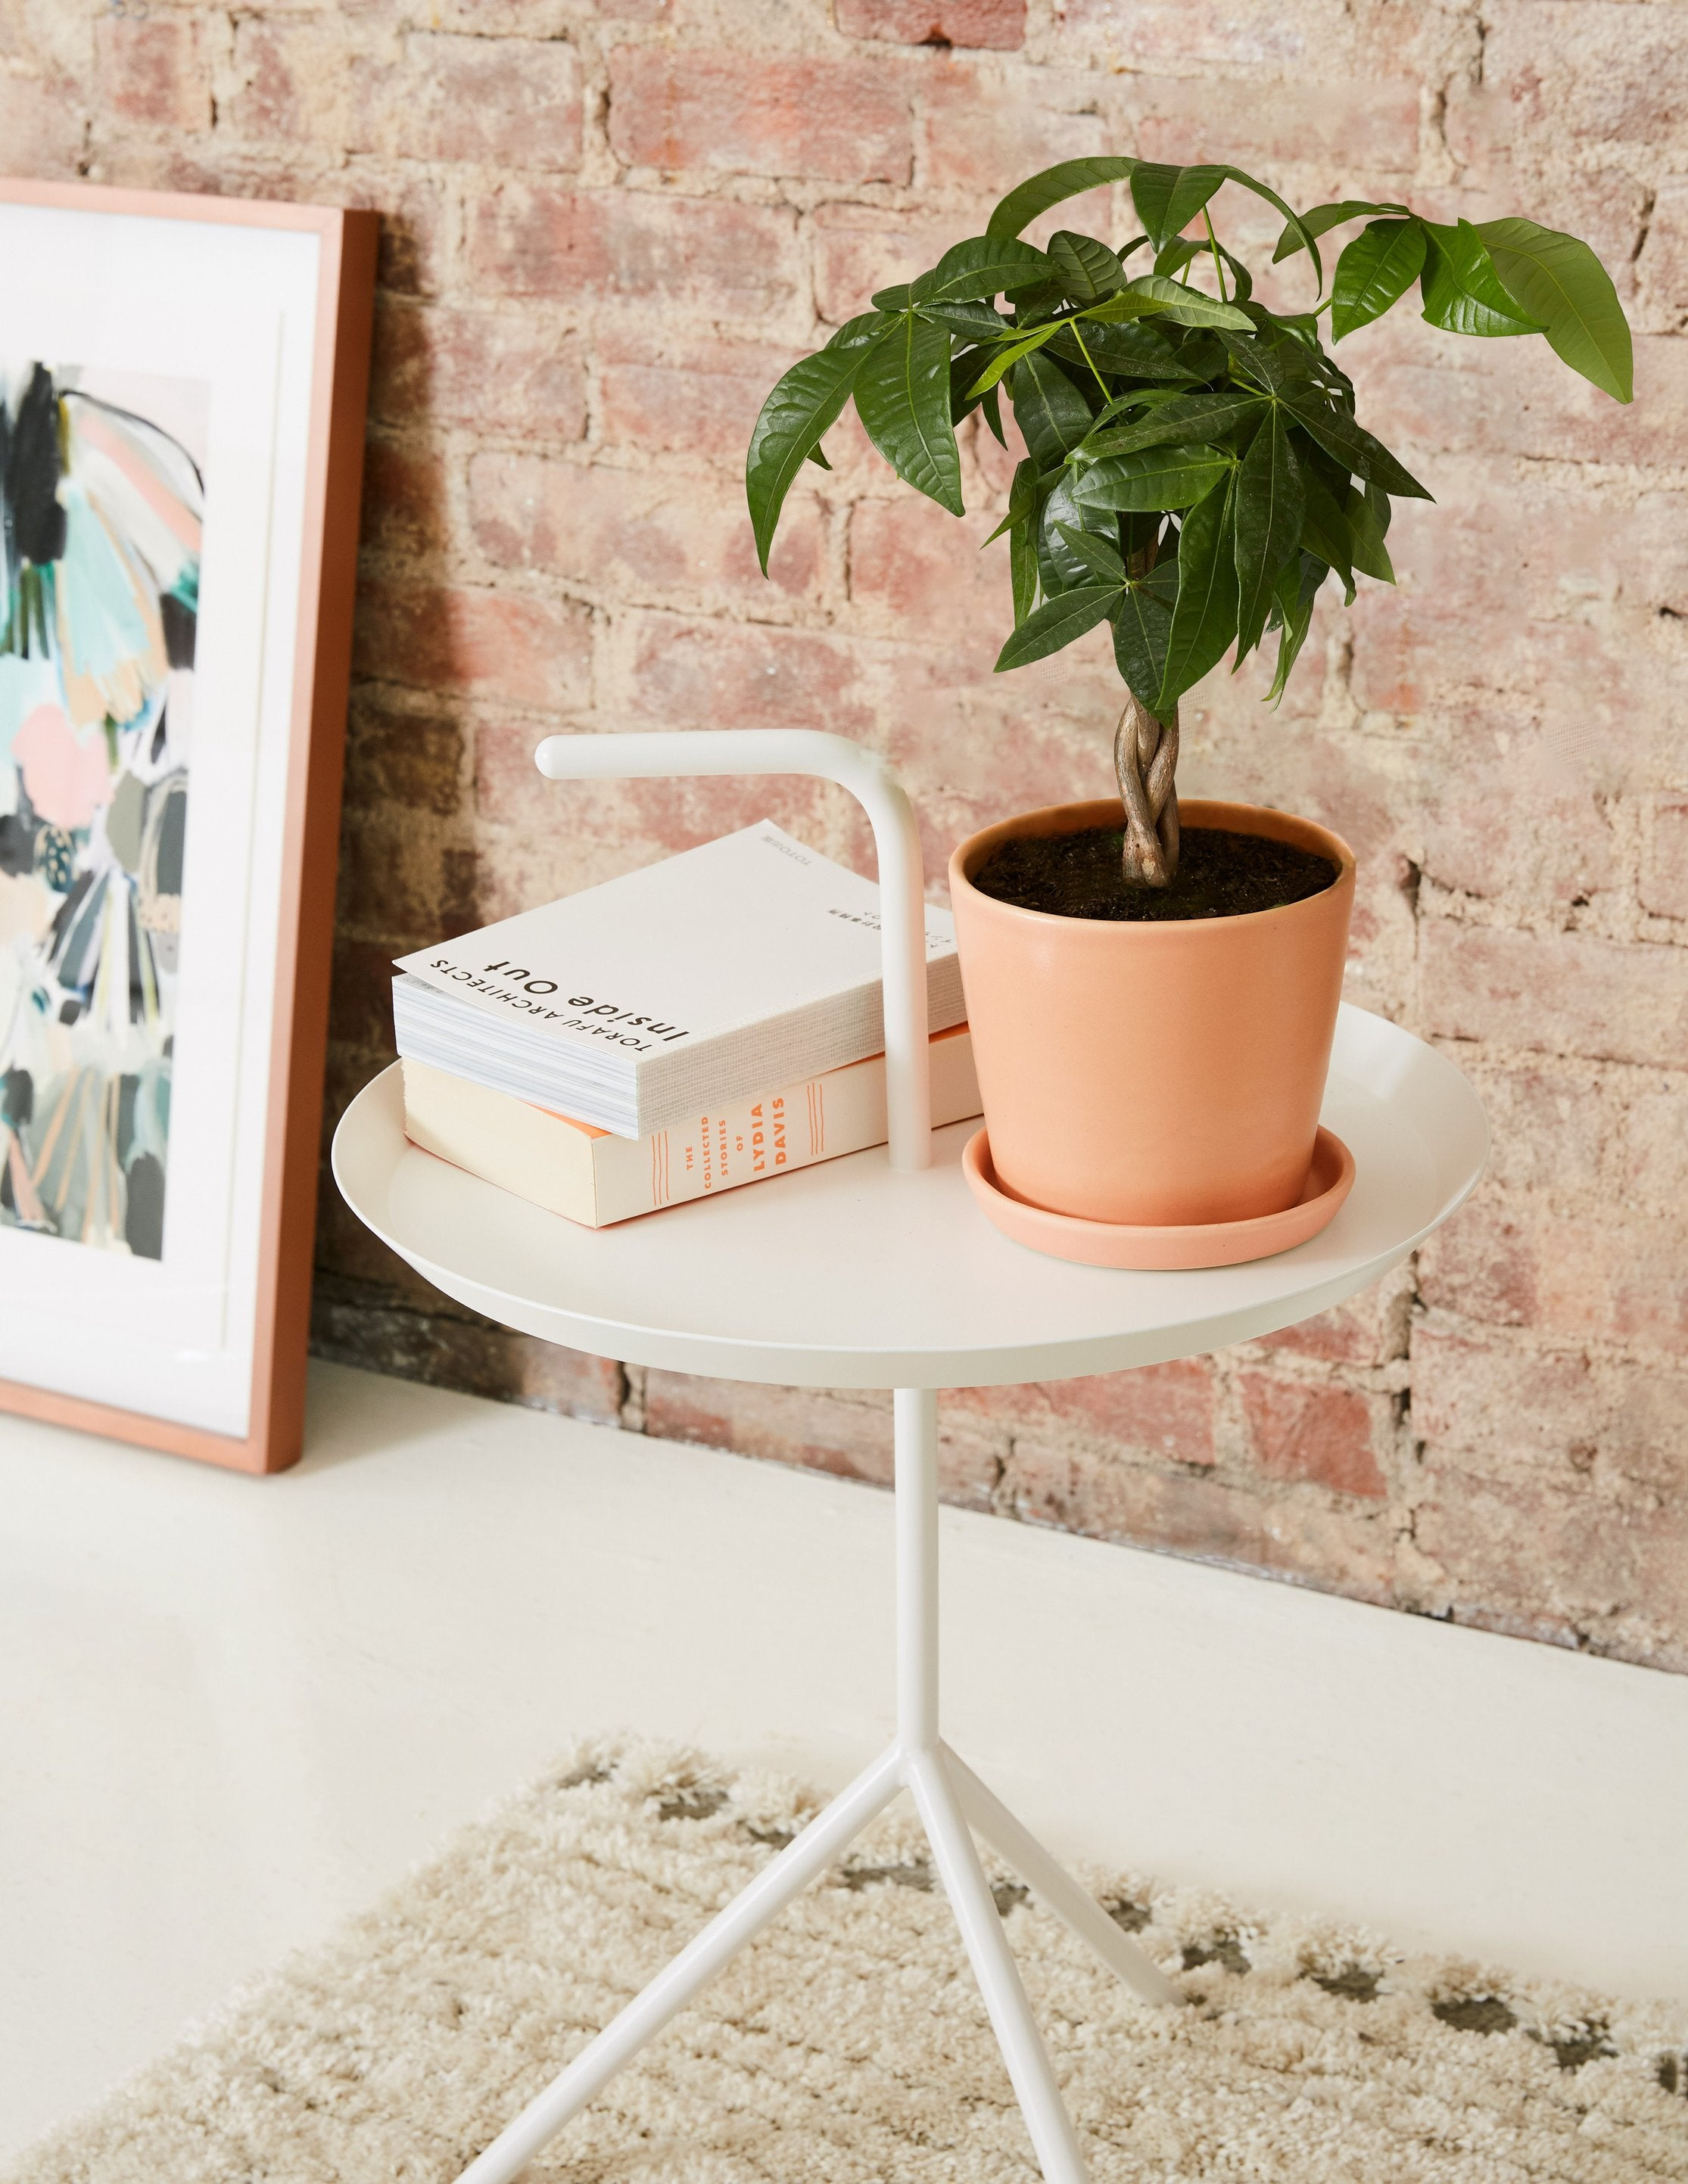 FEATURED Vgallery_the-sill_moneytree_august_2230x.progressive